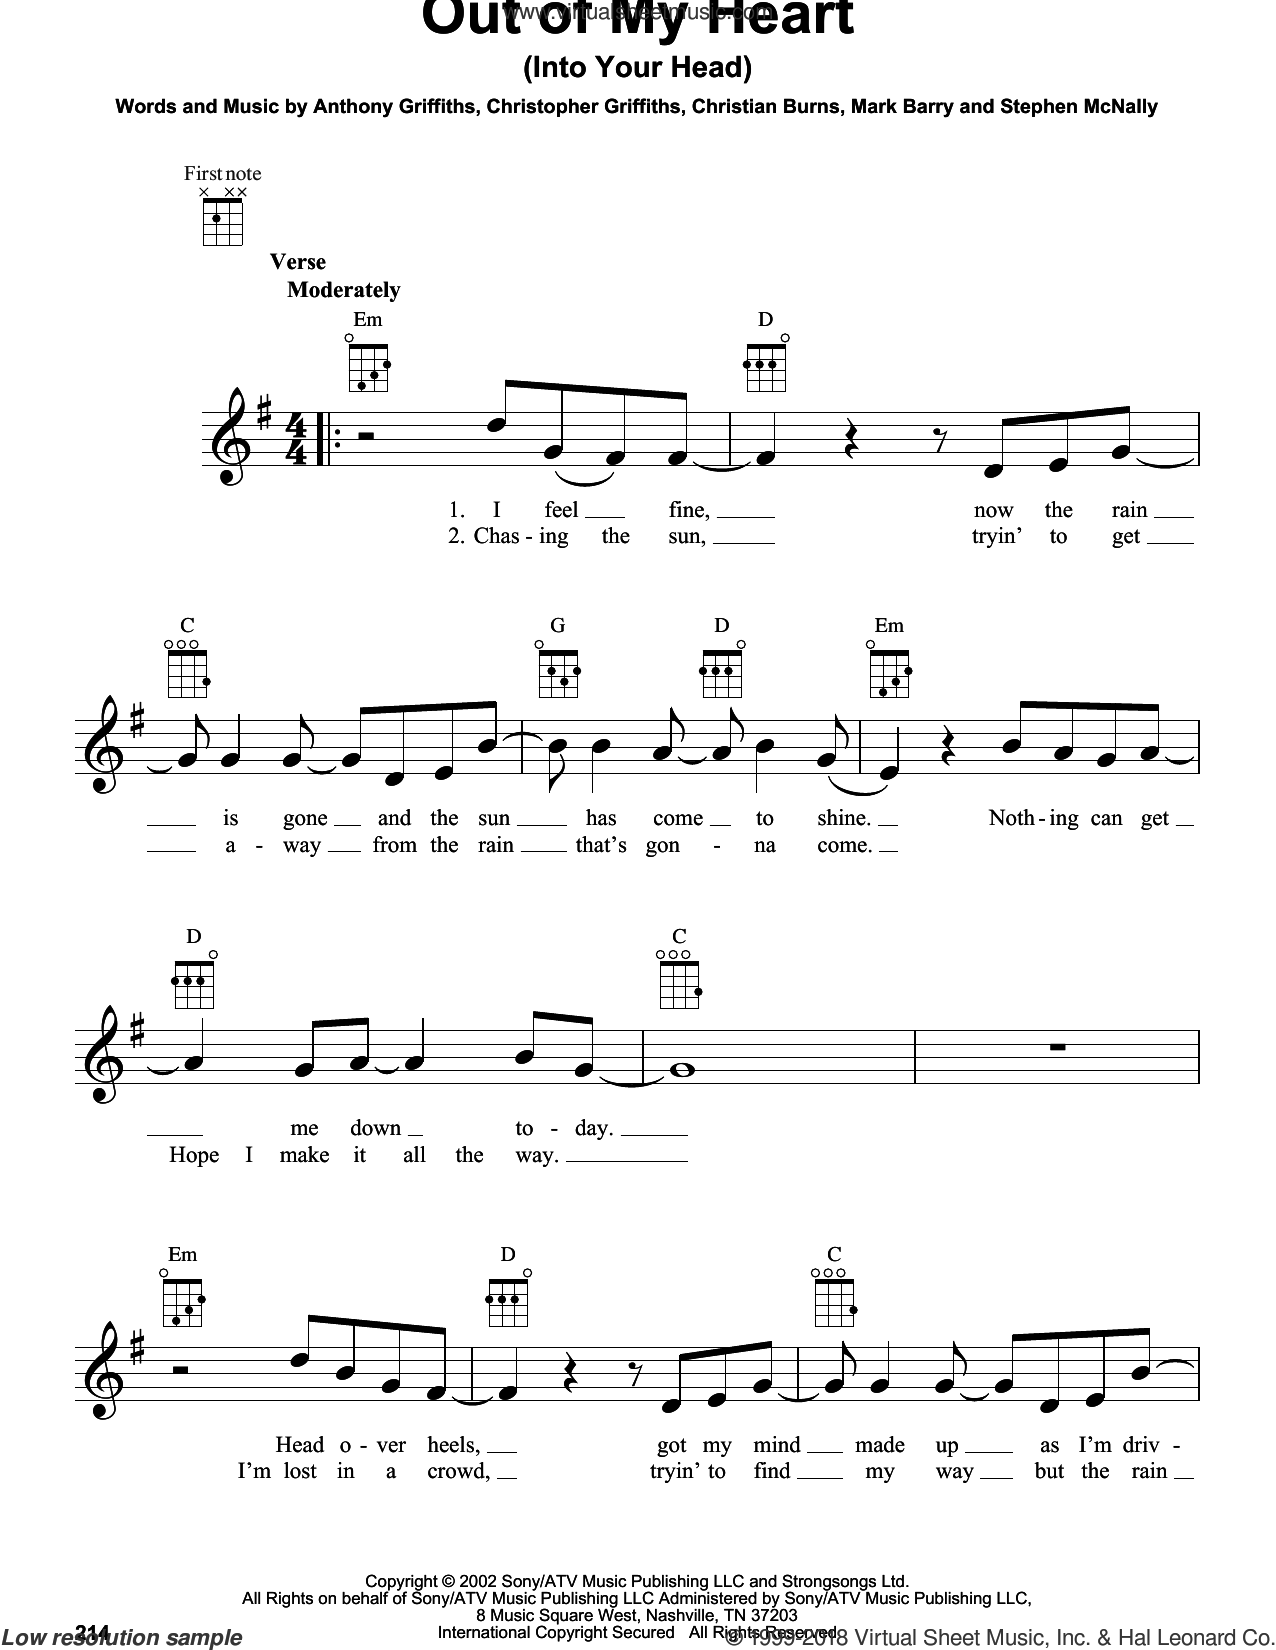 Out Of My Heart (Into Your Head) sheet music for ukulele by BBMak